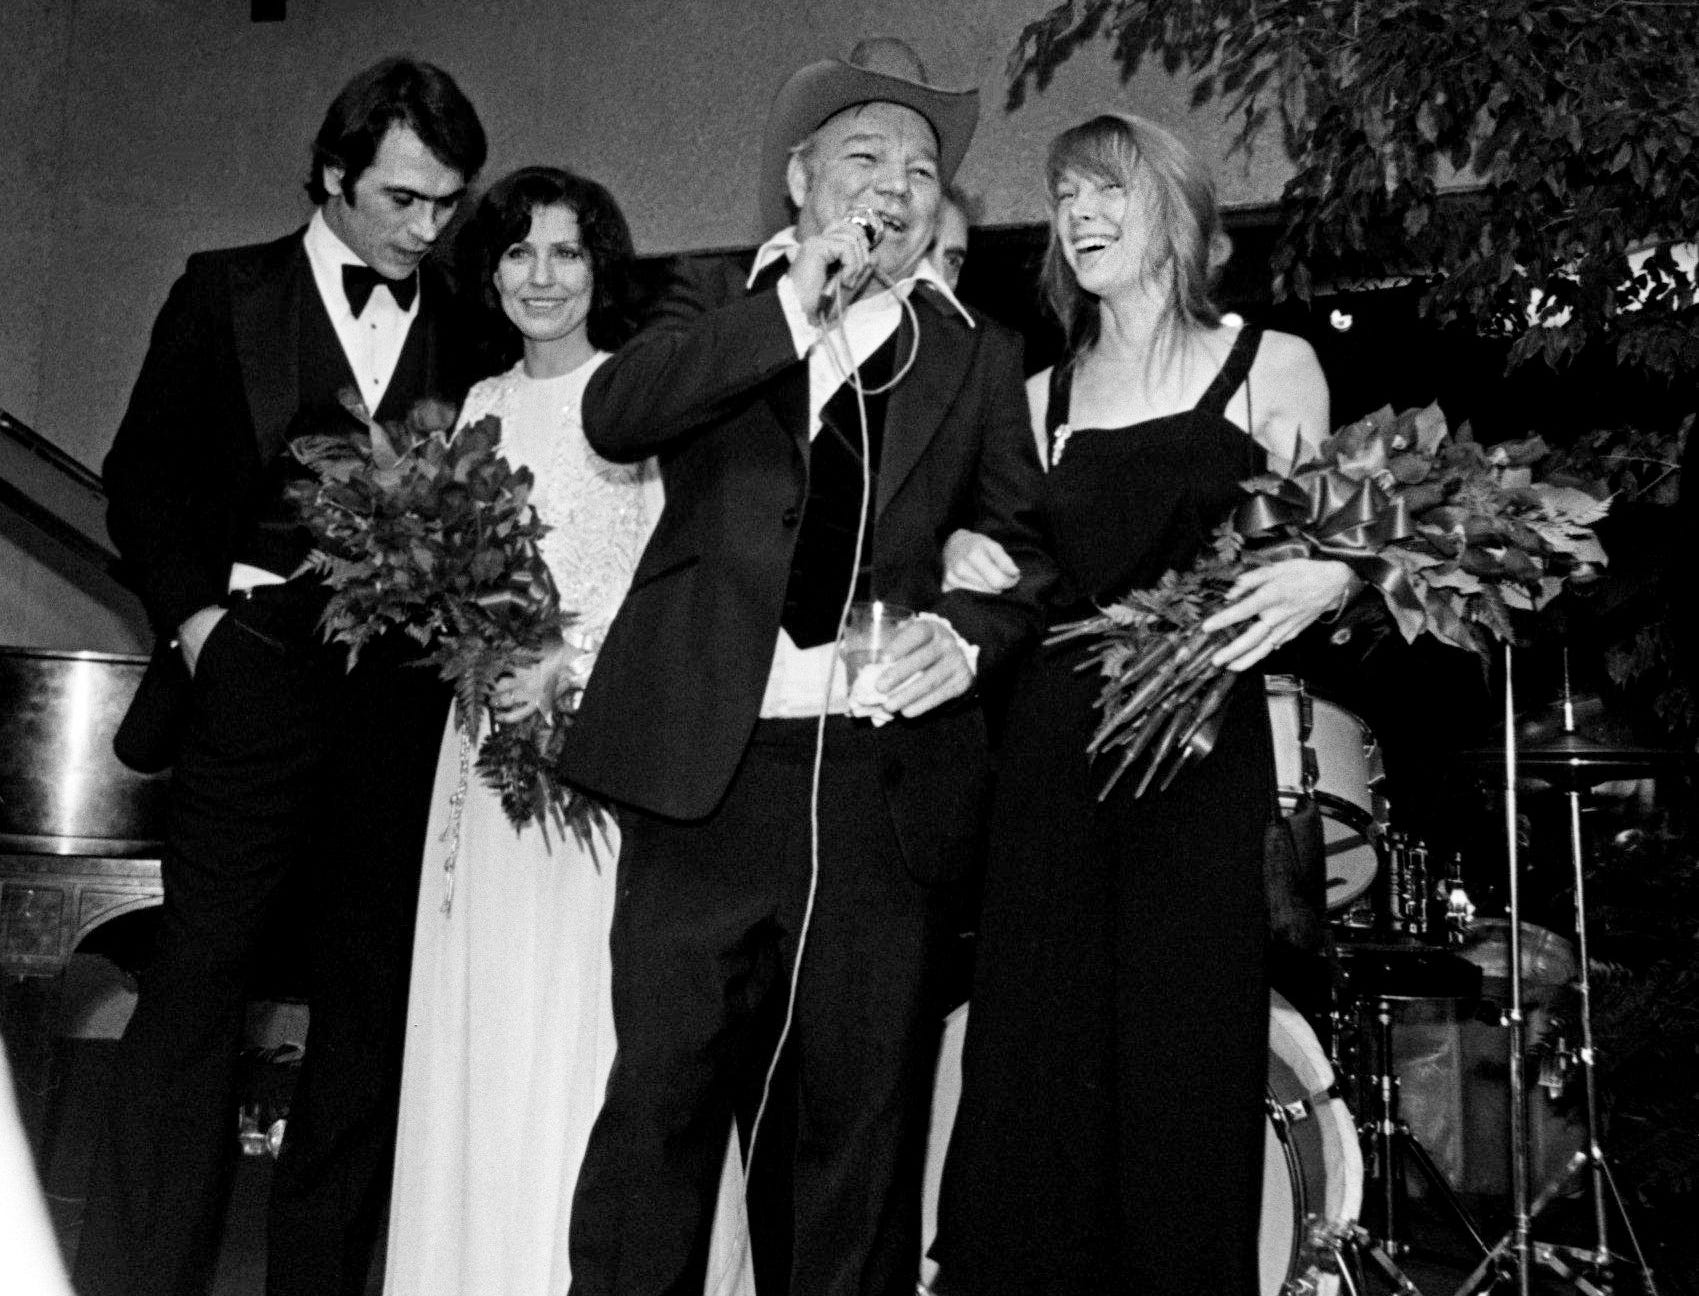 """At the cocktail reception held at Cheekwood's Botanic Hall after the movie premiere showing of """"Coal Miner's Daughter"""" March 4, 1984, Mooney Lynn, second from right, introduces his wife, Loretta Lynn, second from left, and actor Tommy Lee Jones, left, who plays Mooney, and actress Sissy Spacek, right, who stars as Loretta."""